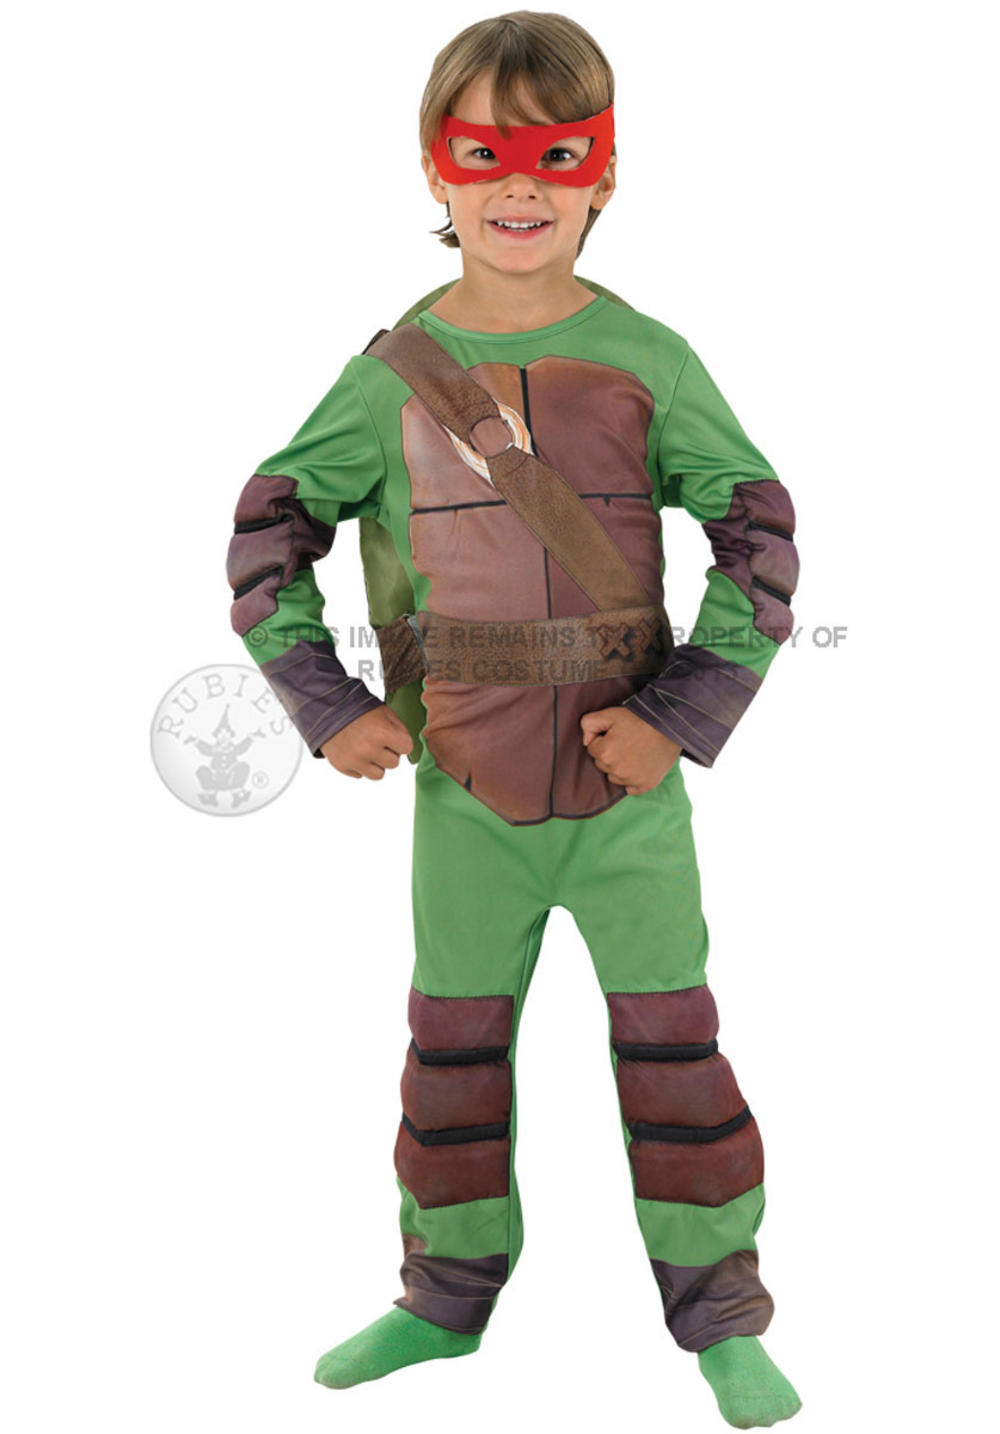 Deluxe Teenage Mutant Ninja Turtle Costume  sc 1 st  Mega Fancy Dress & Deluxe Teenage Mutant Ninja Turtle Costume | TV Book and Film ...